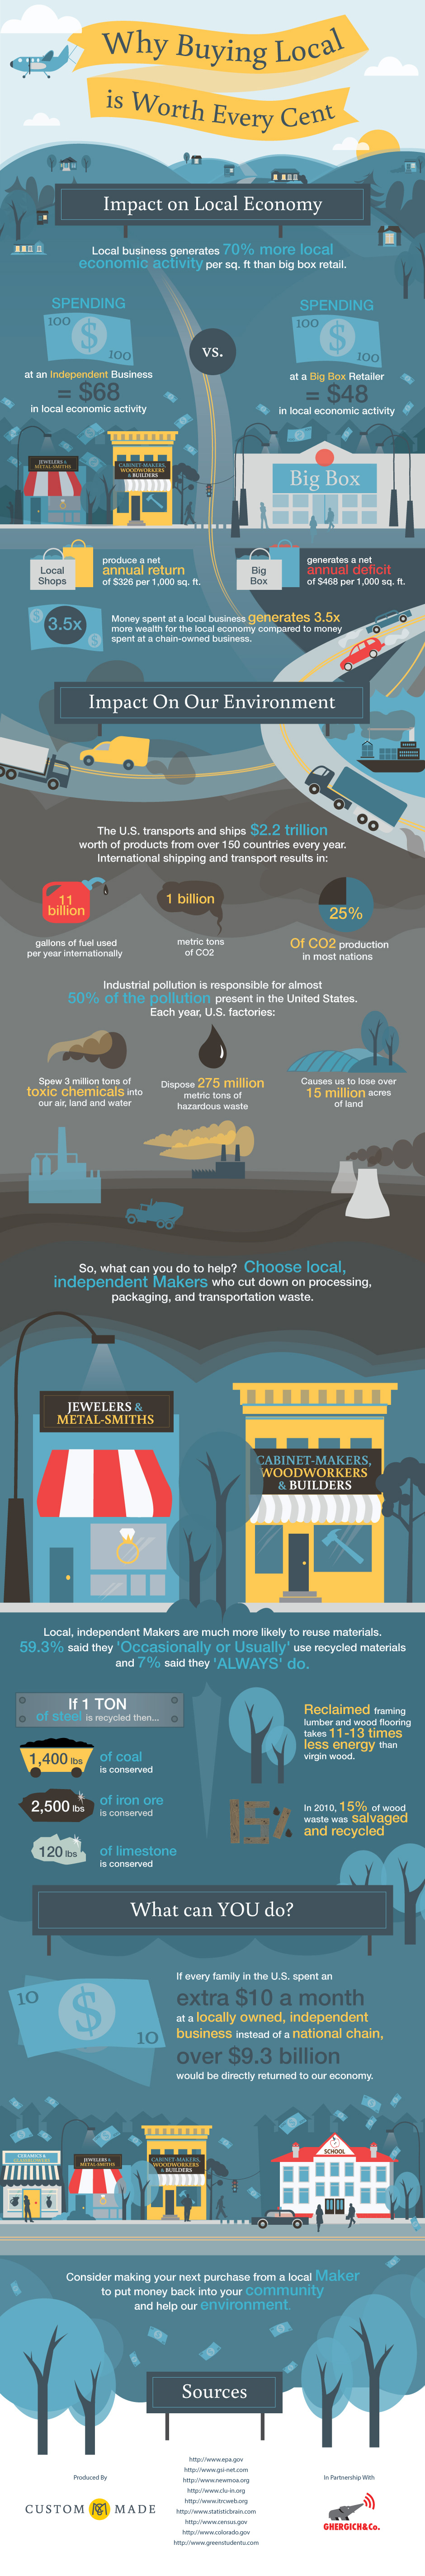 2013-11-20-buying_local_infograph1.jpg